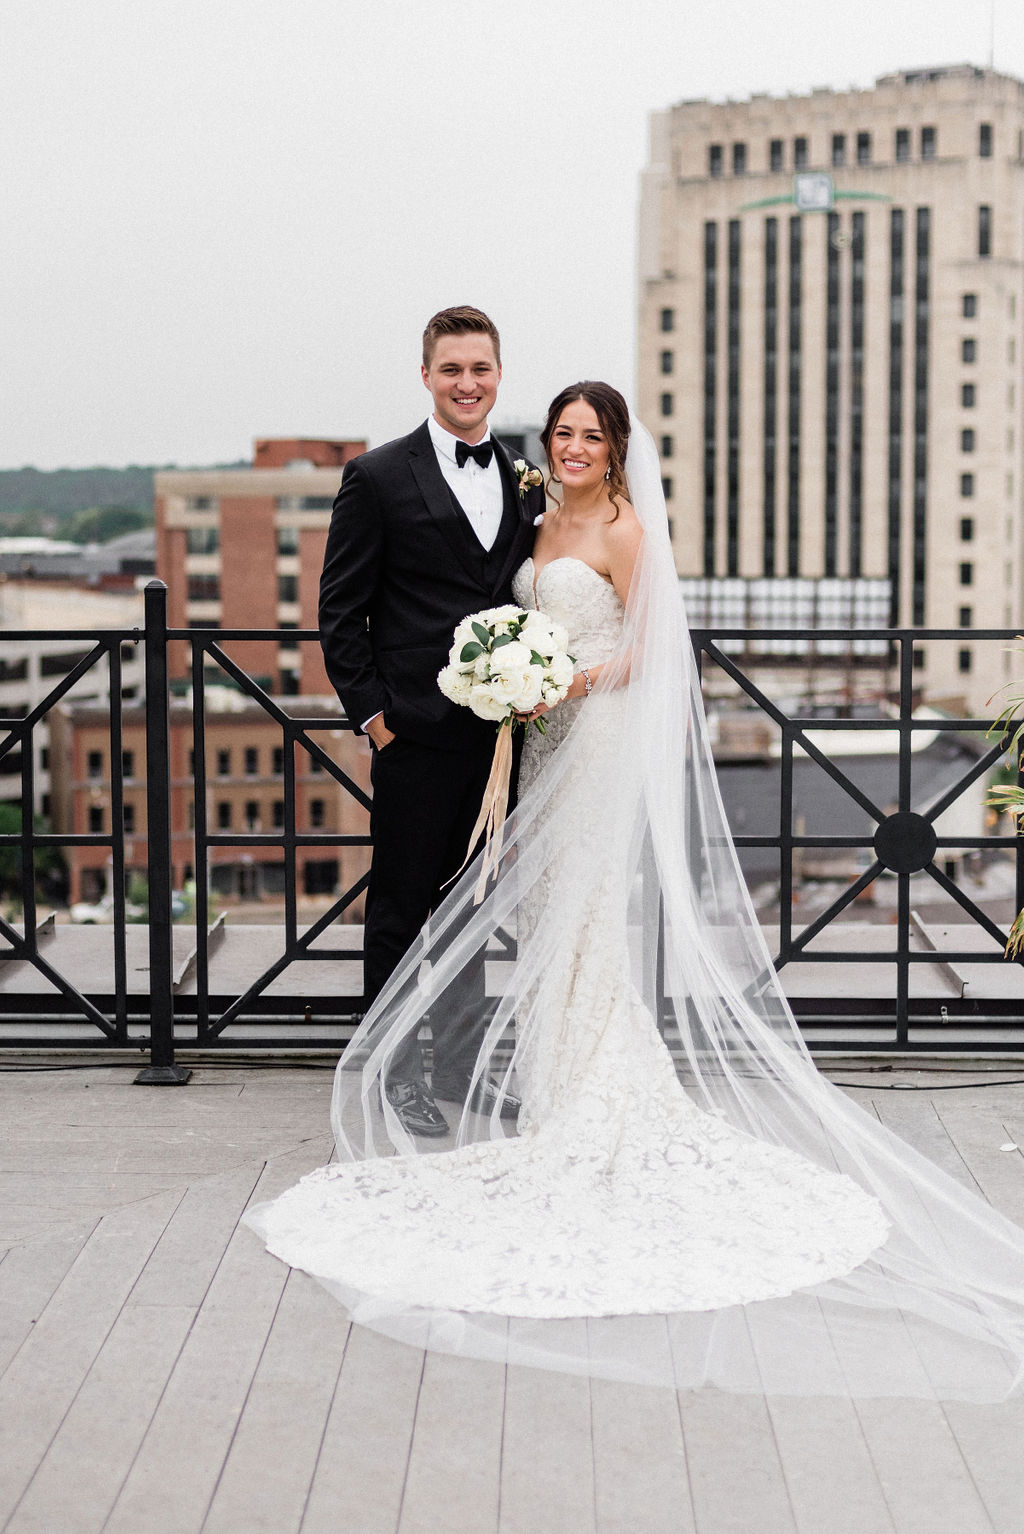 A bride and groom smiling during their downtown kalamazoo wedding